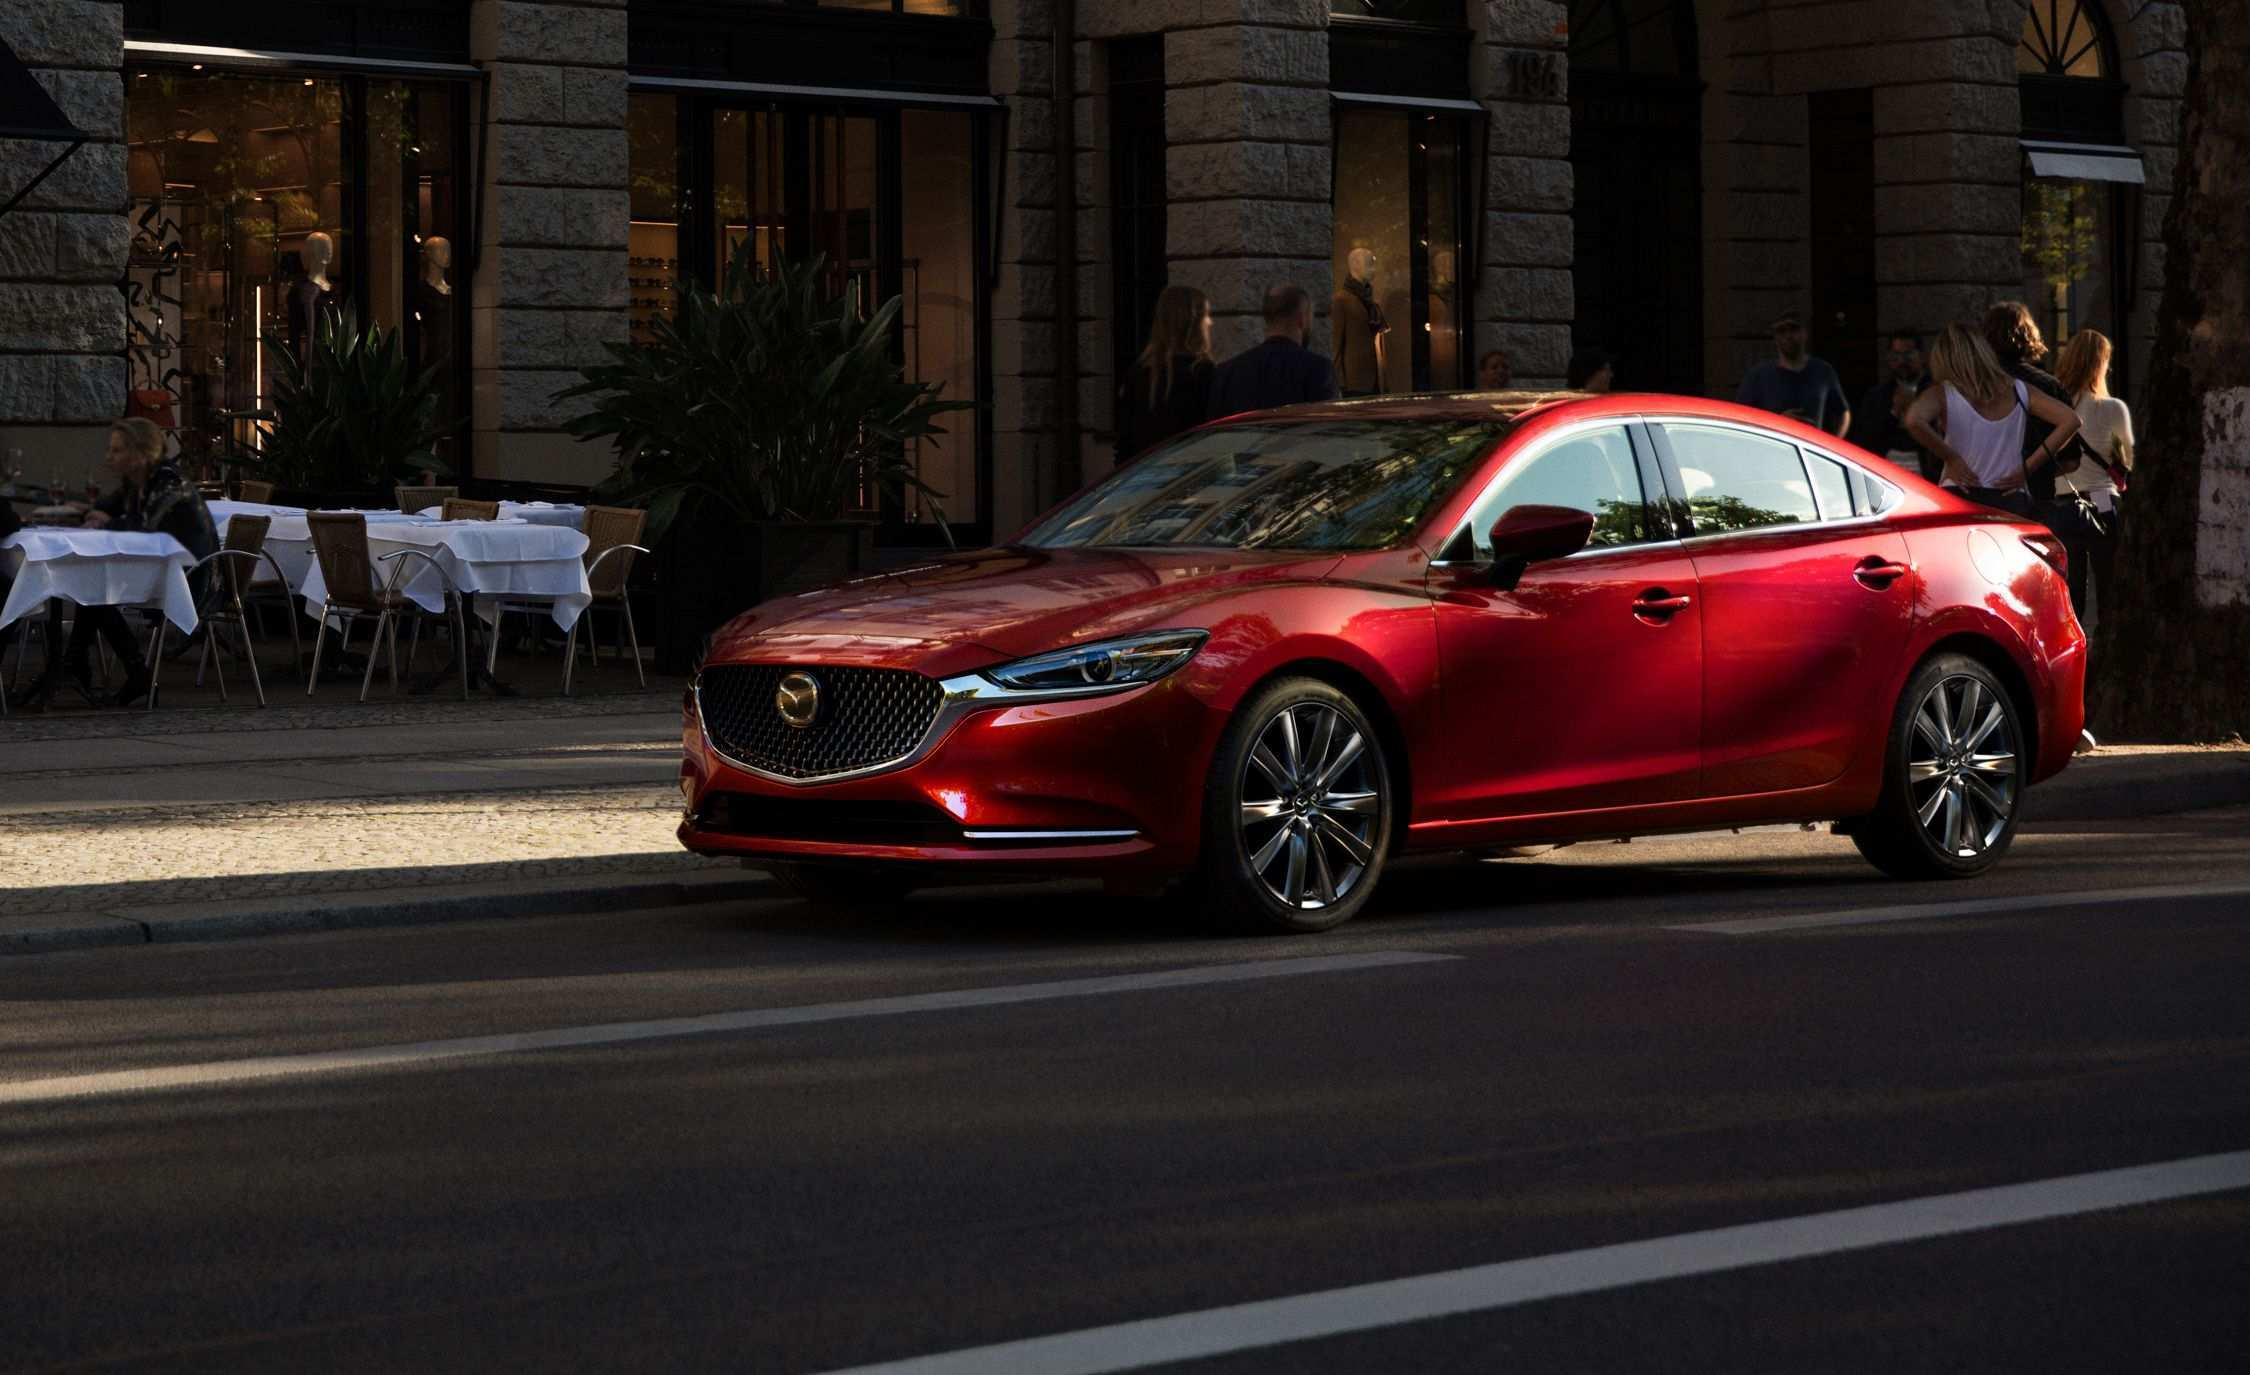 24 Best Review New 2019 Mazda 6 Spy Shots Redesign Price And Review History with New 2019 Mazda 6 Spy Shots Redesign Price And Review